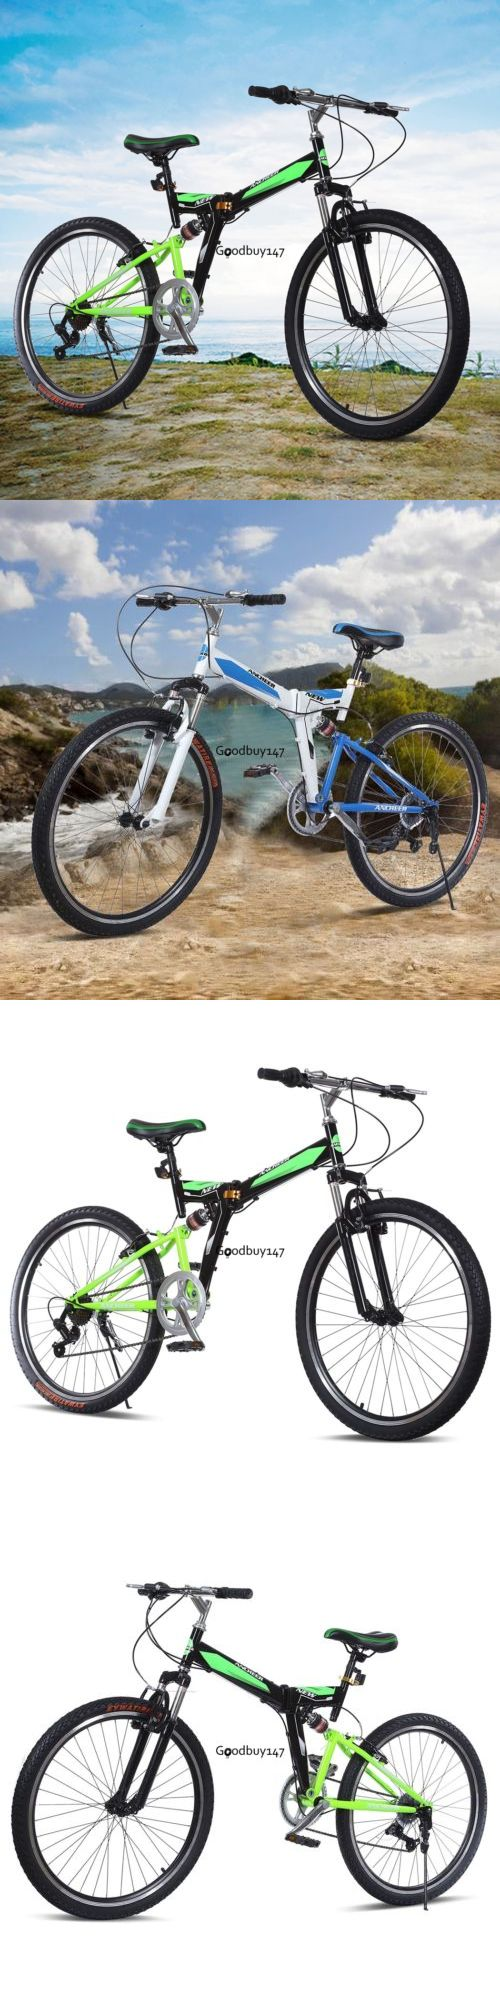 bicycles: 26 Folding Mountain Bike Steel Frame Mens Bicycle 7 Speed Smooth Ride Outdoor# BUY IT NOW ONLY: $106.45